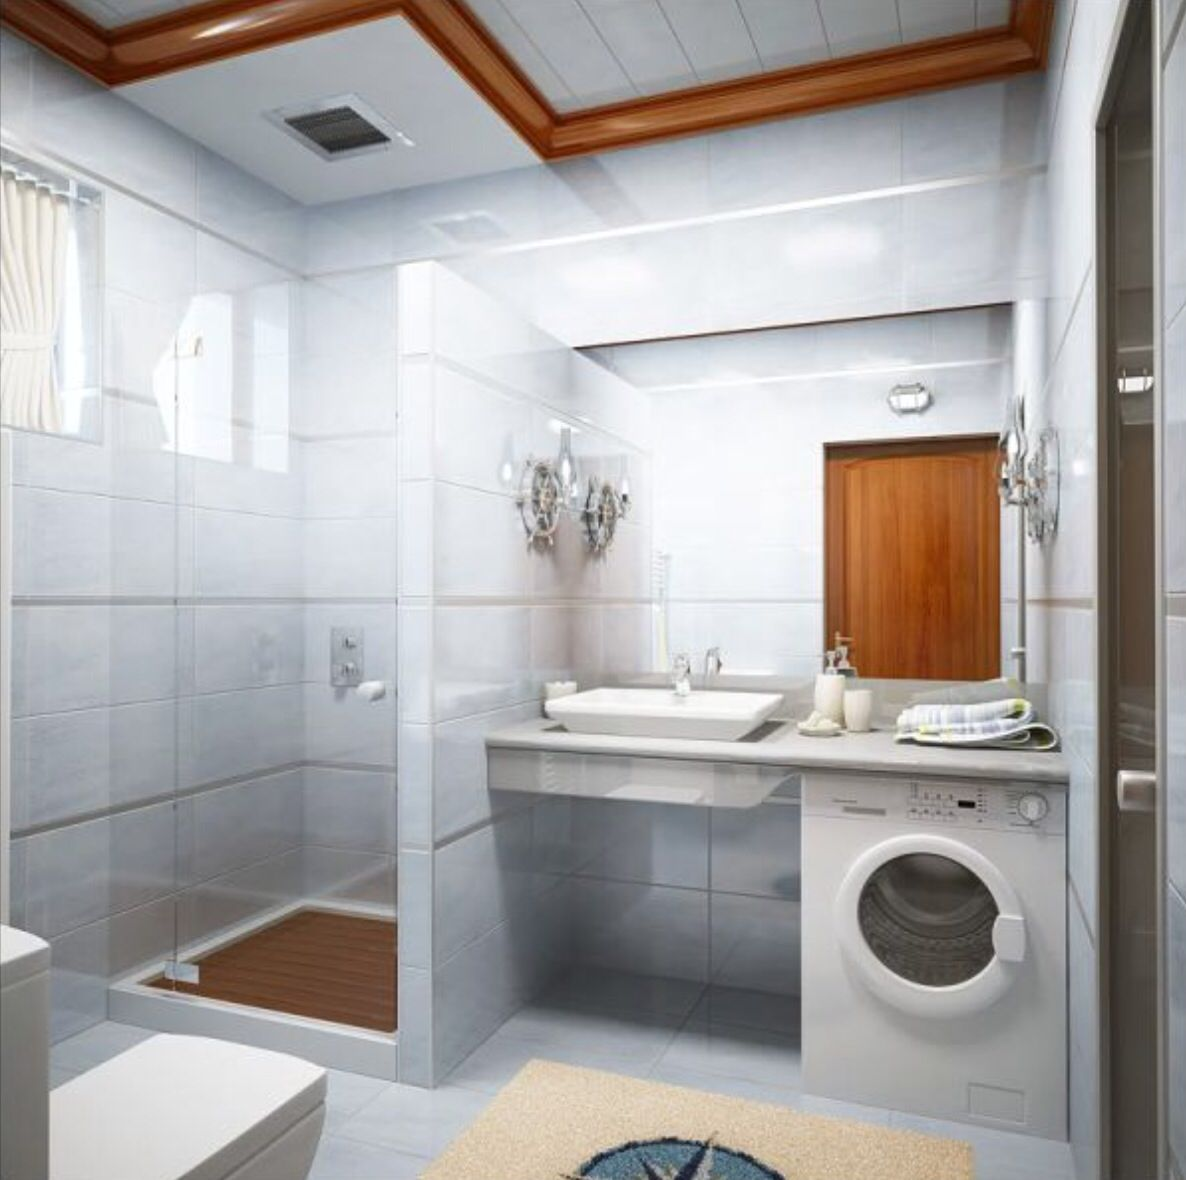 Save room by combining your bathroom and laundry room into one ...